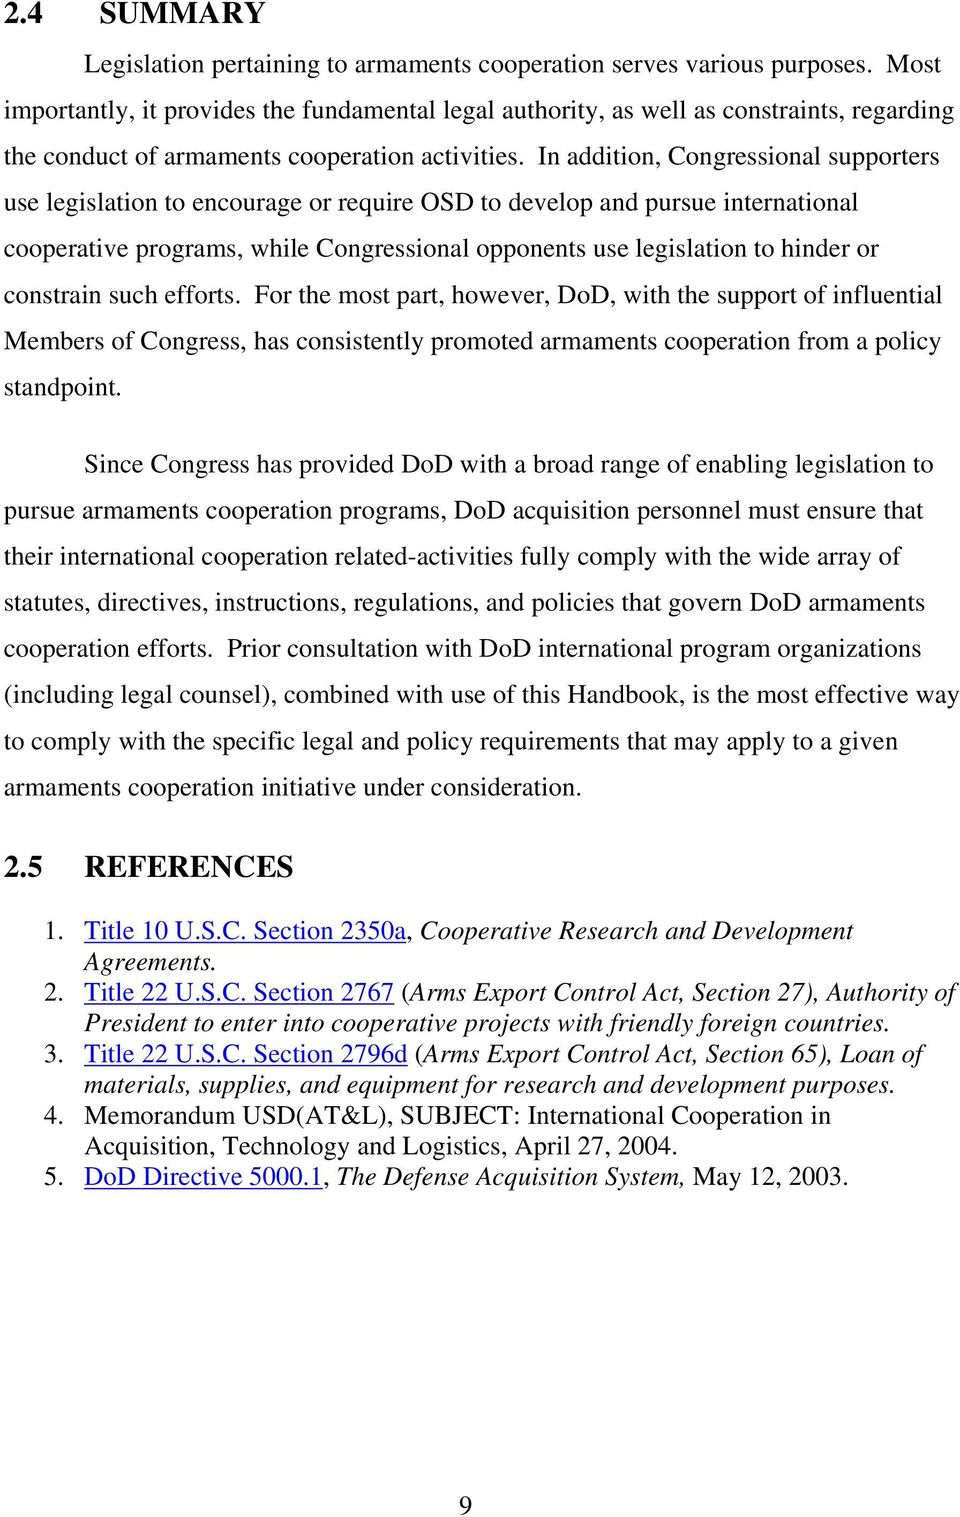 In addition, Congressional supporters use legislation to encourage or require OSD to develop and pursue international cooperative programs, while Congressional opponents use legislation to hinder or